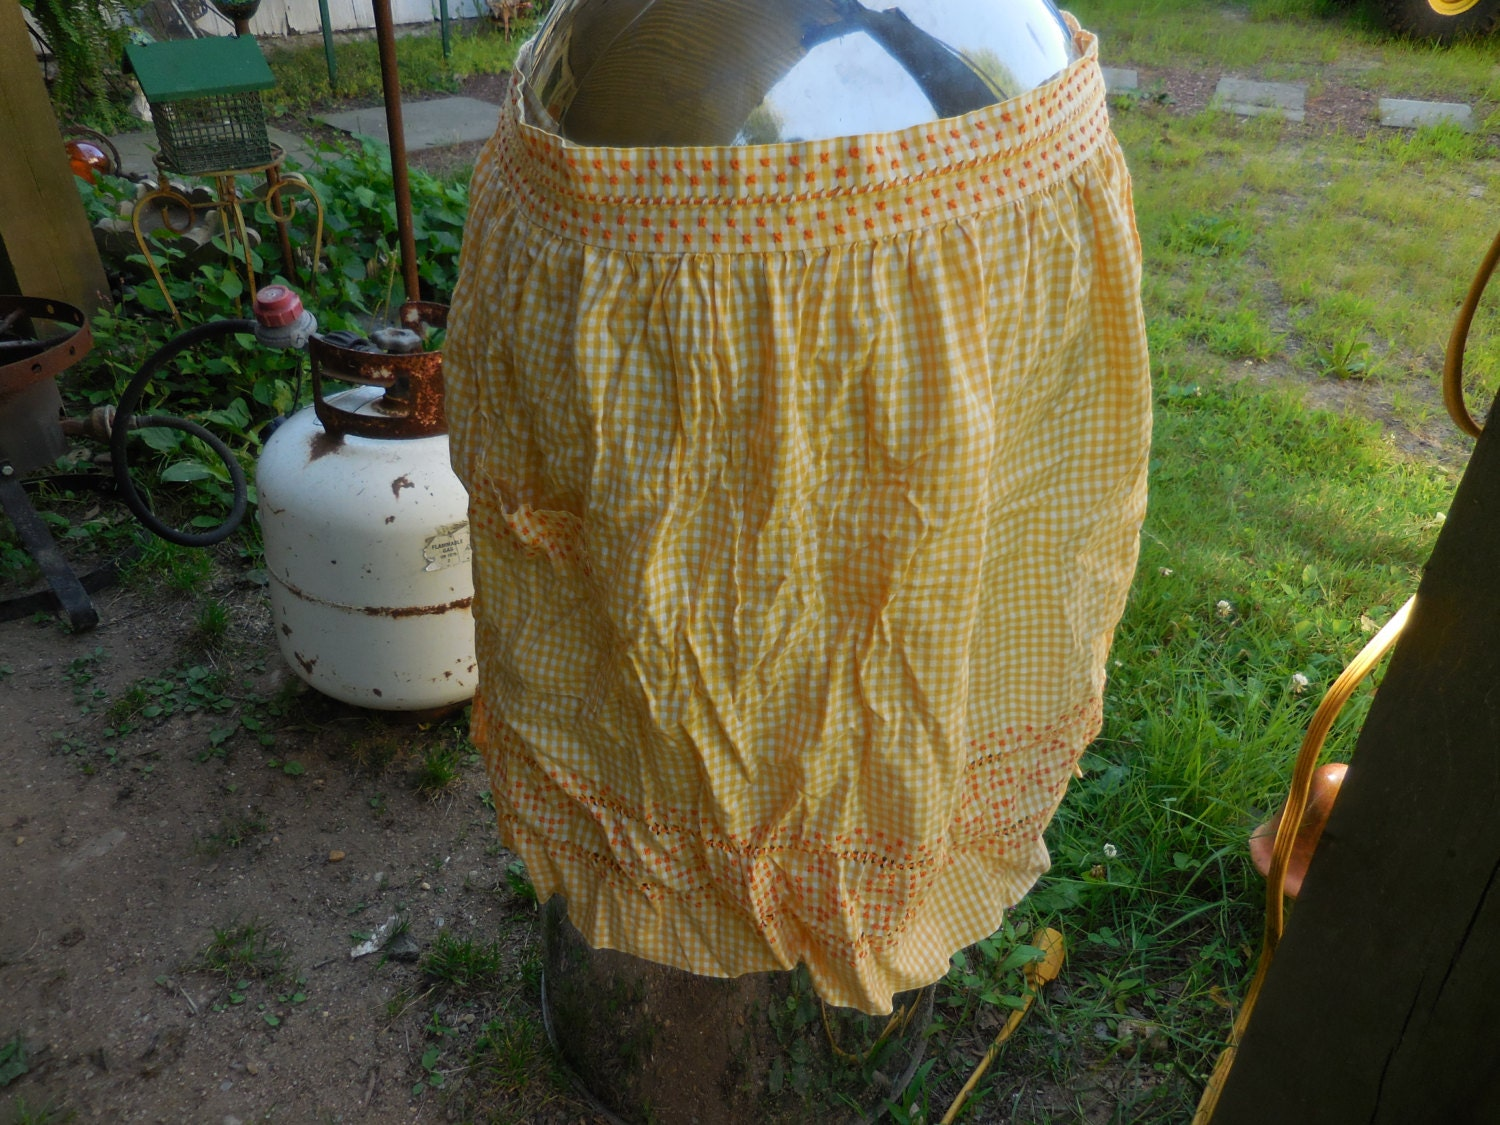 Vintage Aprons, Retro Aprons, Old Fashioned Aprons & Patterns Vintage 1950S To 1960S Yellow  White Gingham Half Apron With Orange Embroidered Squares Fabric Retro $16.99 AT vintagedancer.com